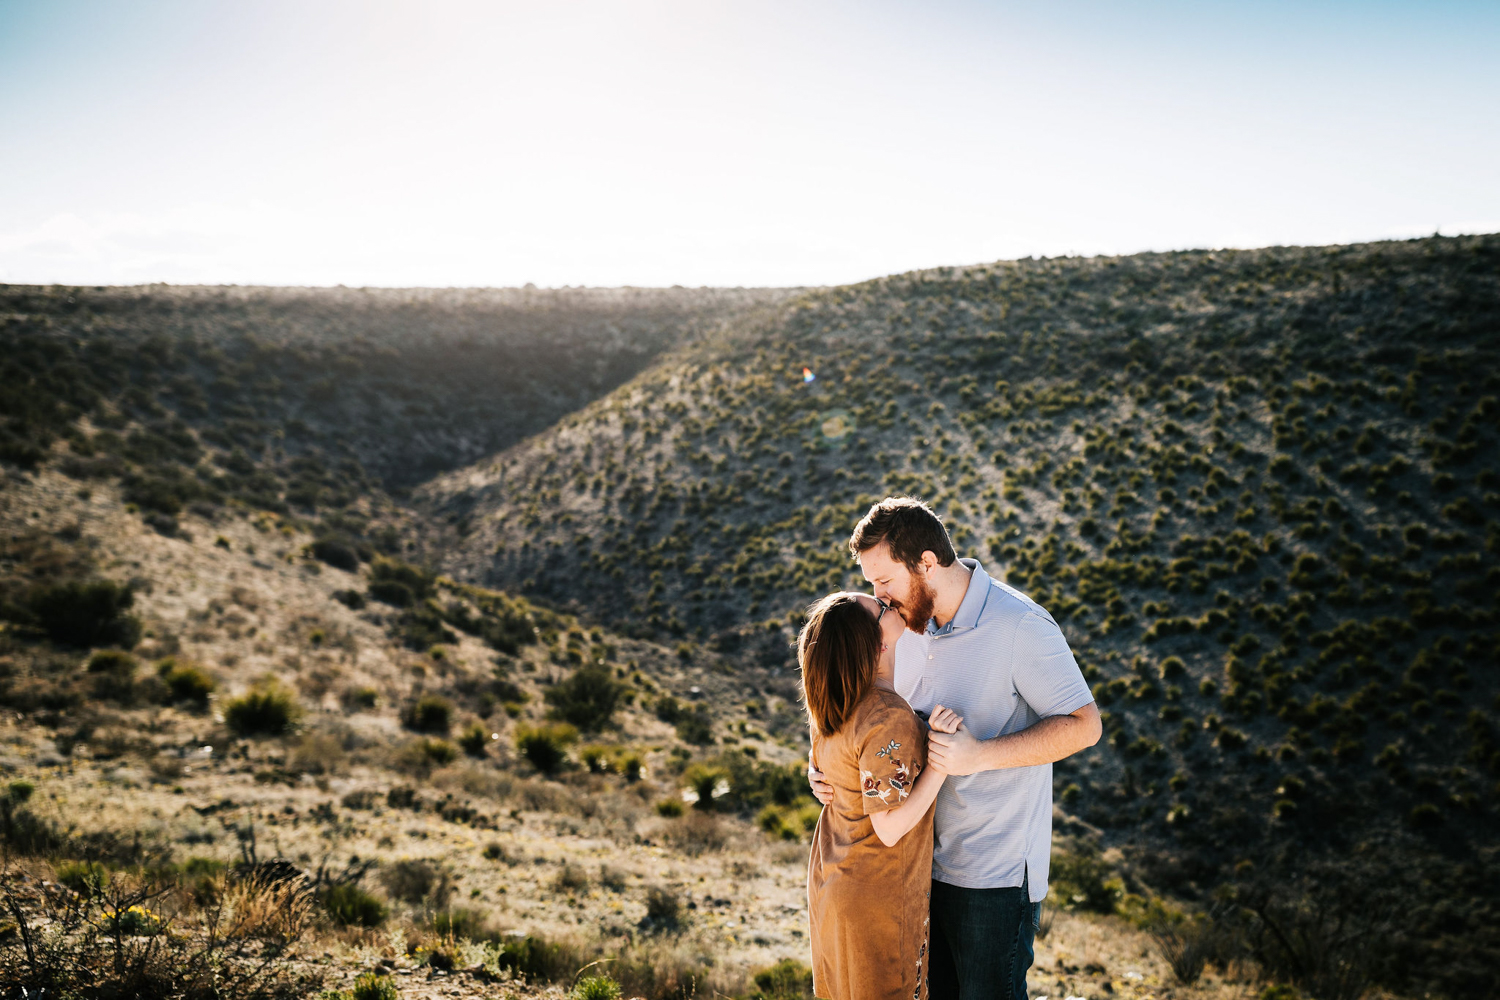 1. adventurous-carlsbad-new-mexico-wedding-photographer-natural-albuquerque-fun-Andrea-van-orsouw-photography-2.jpg